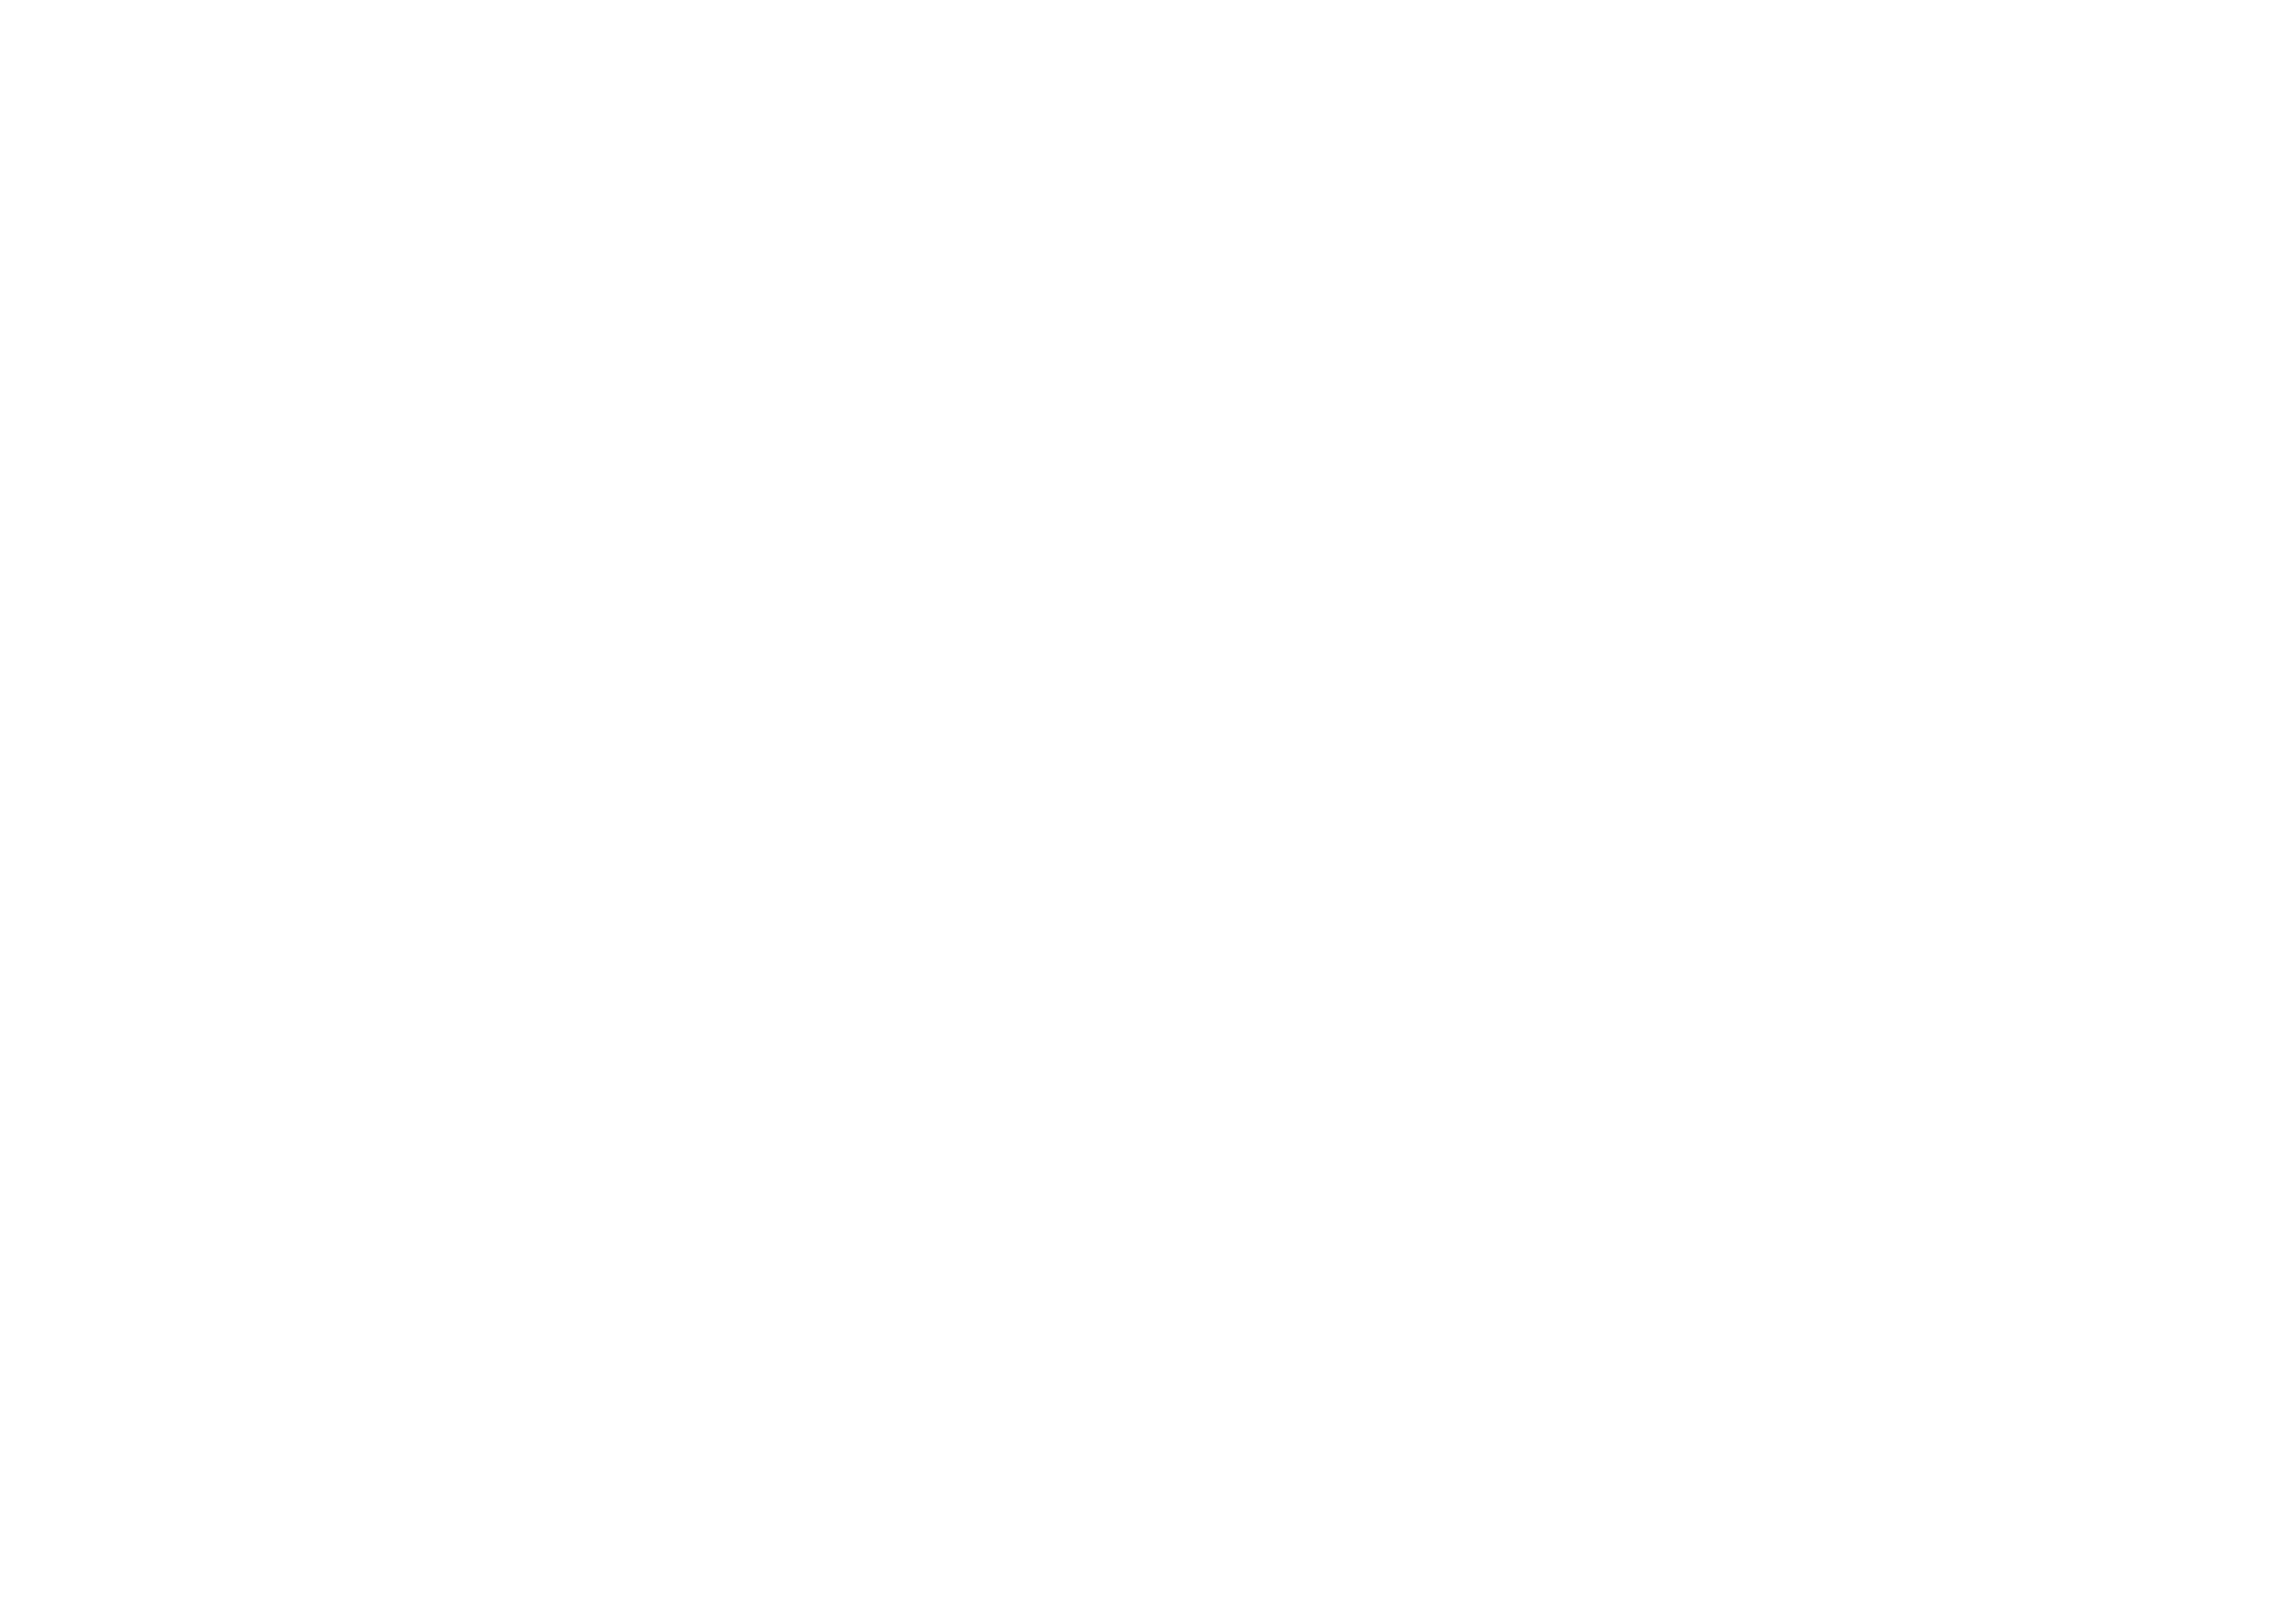 Watch and wait